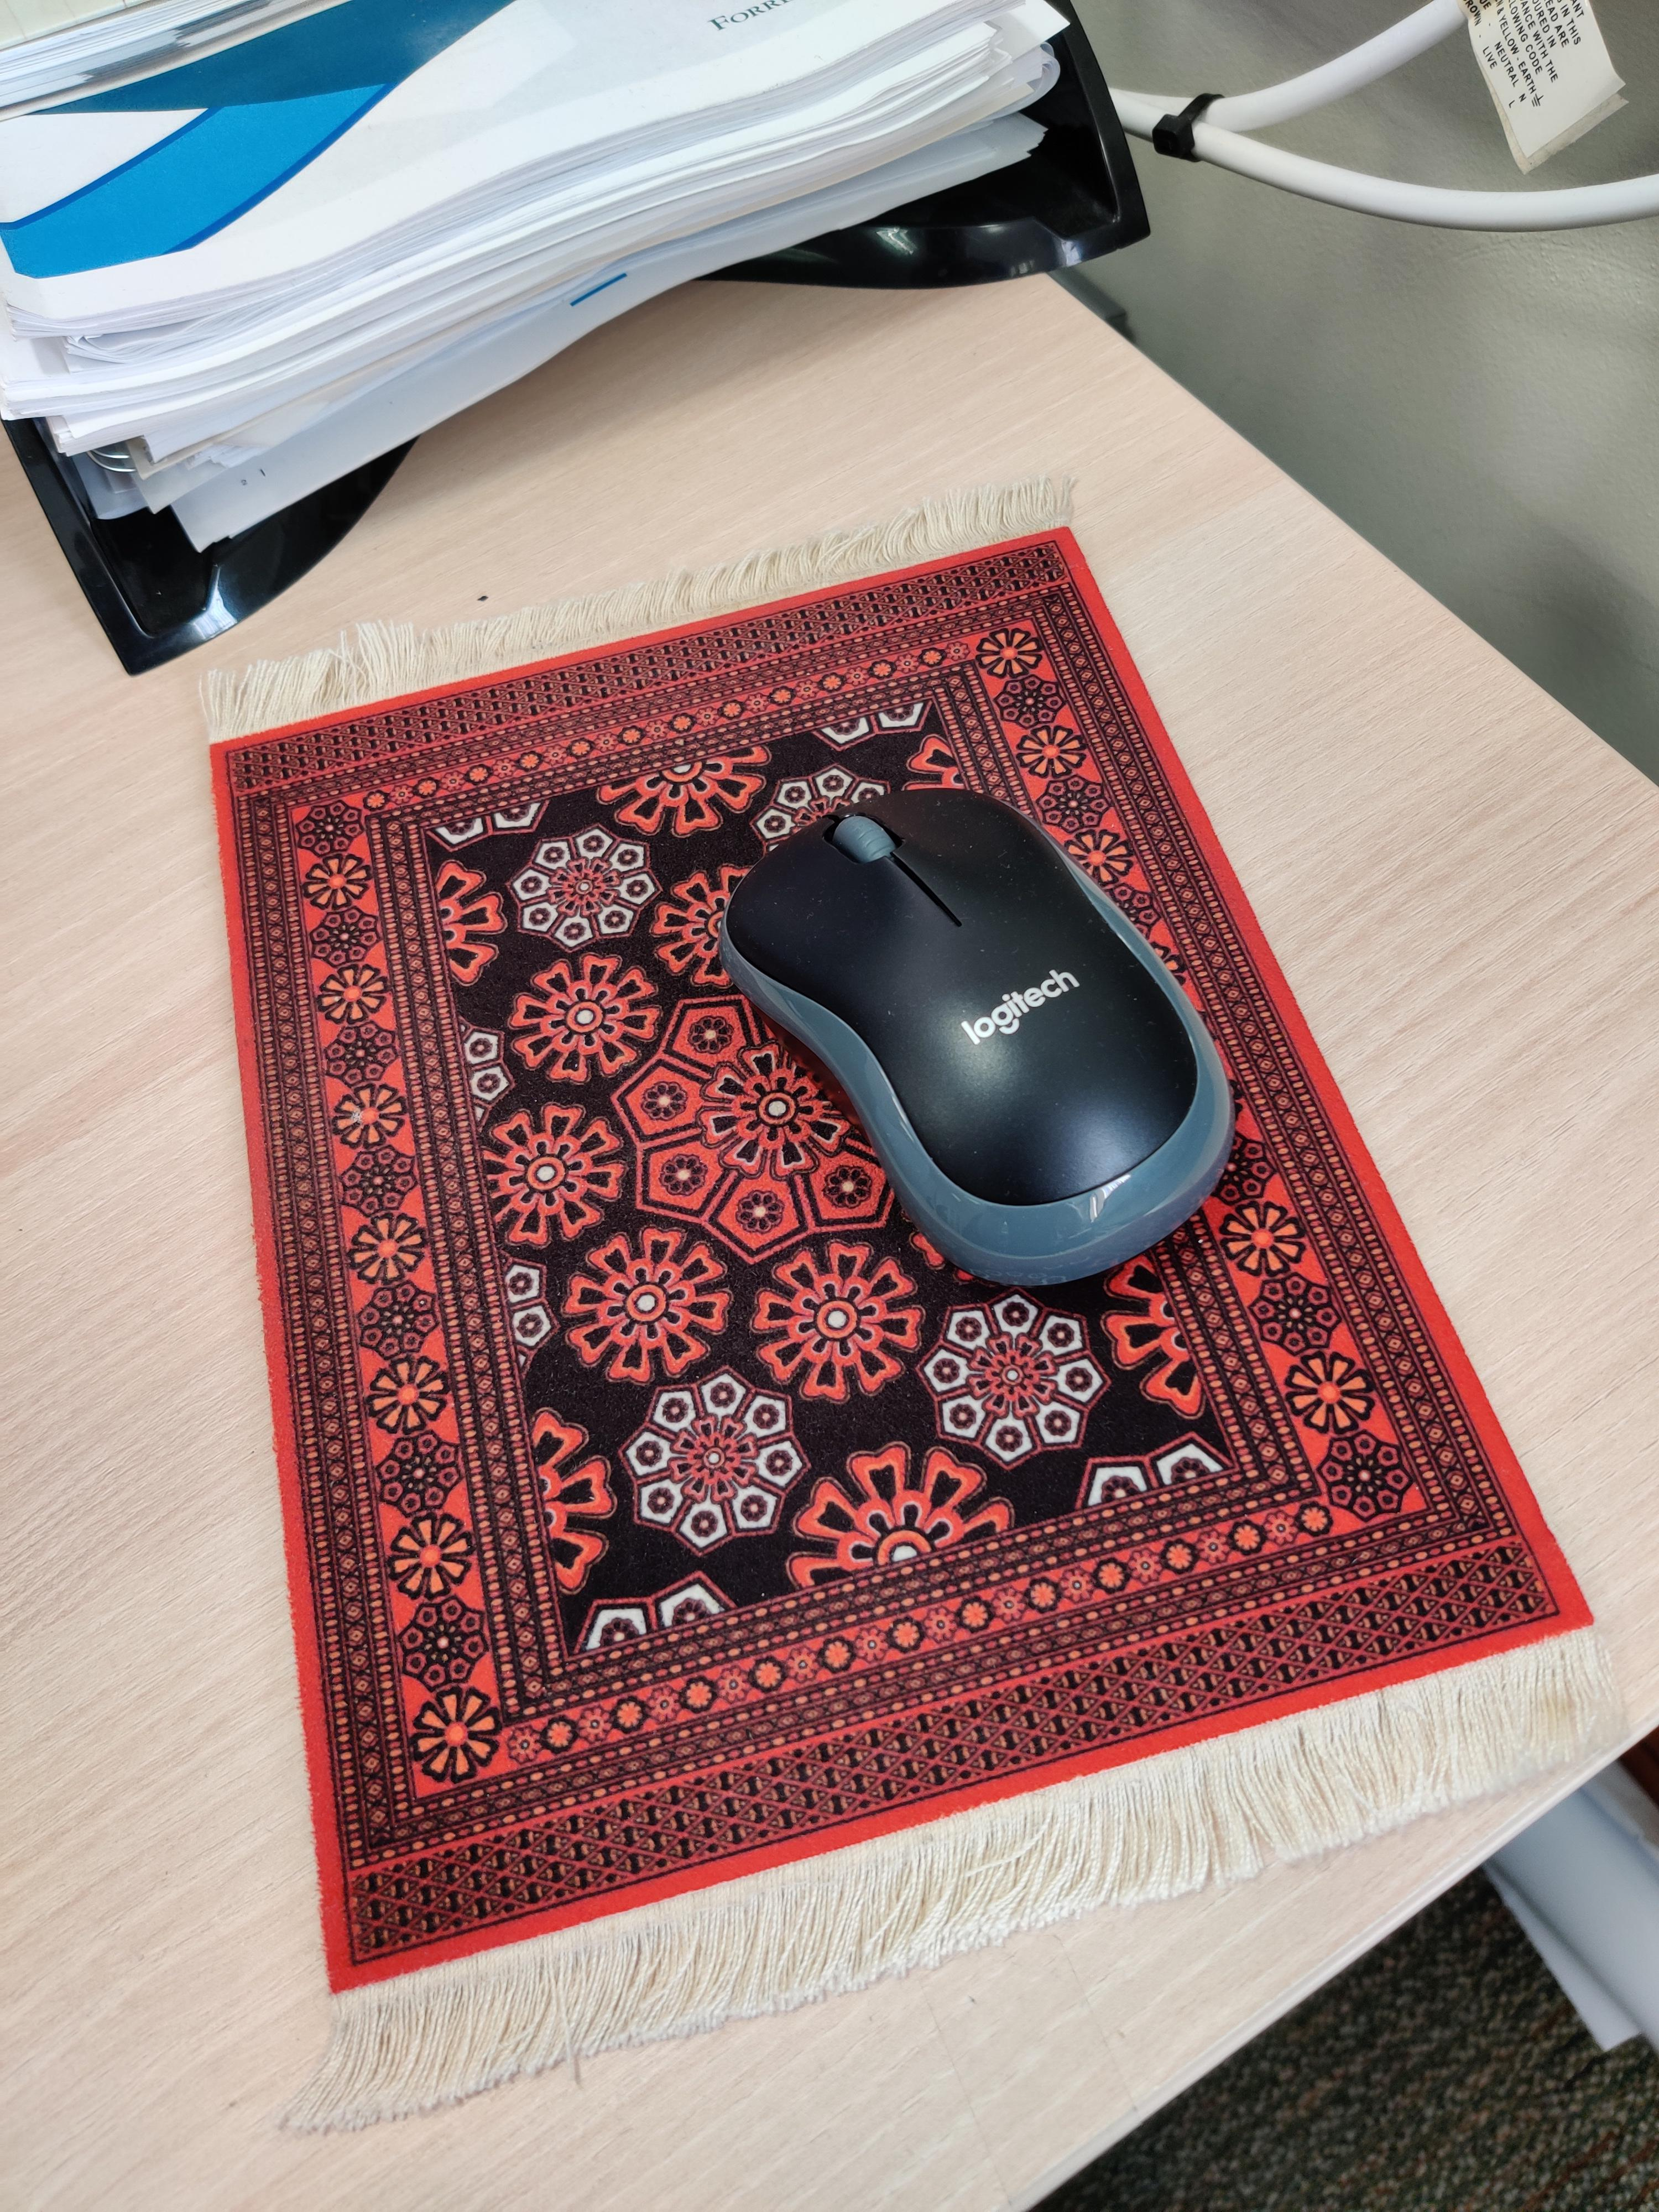 This magic carpet mouse mat my boss uses in work   r